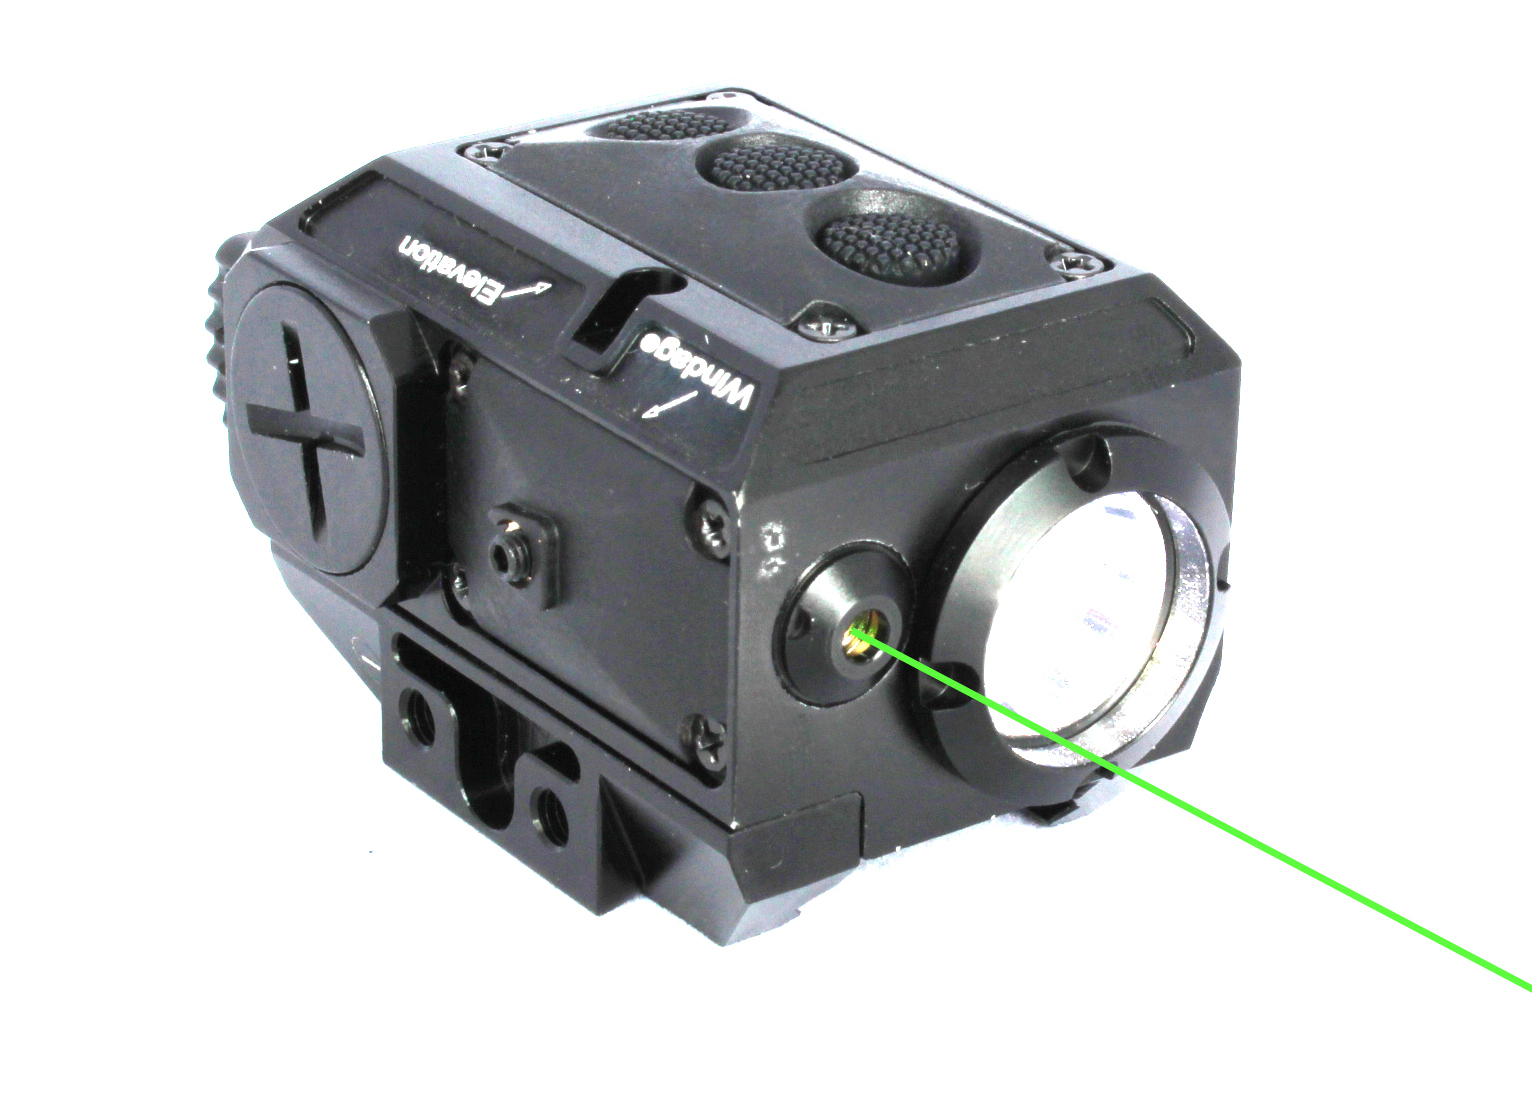 New compact square tactical green laser sight and strobe 200 lumen CREE Q5 LED light combo (FDA certified)